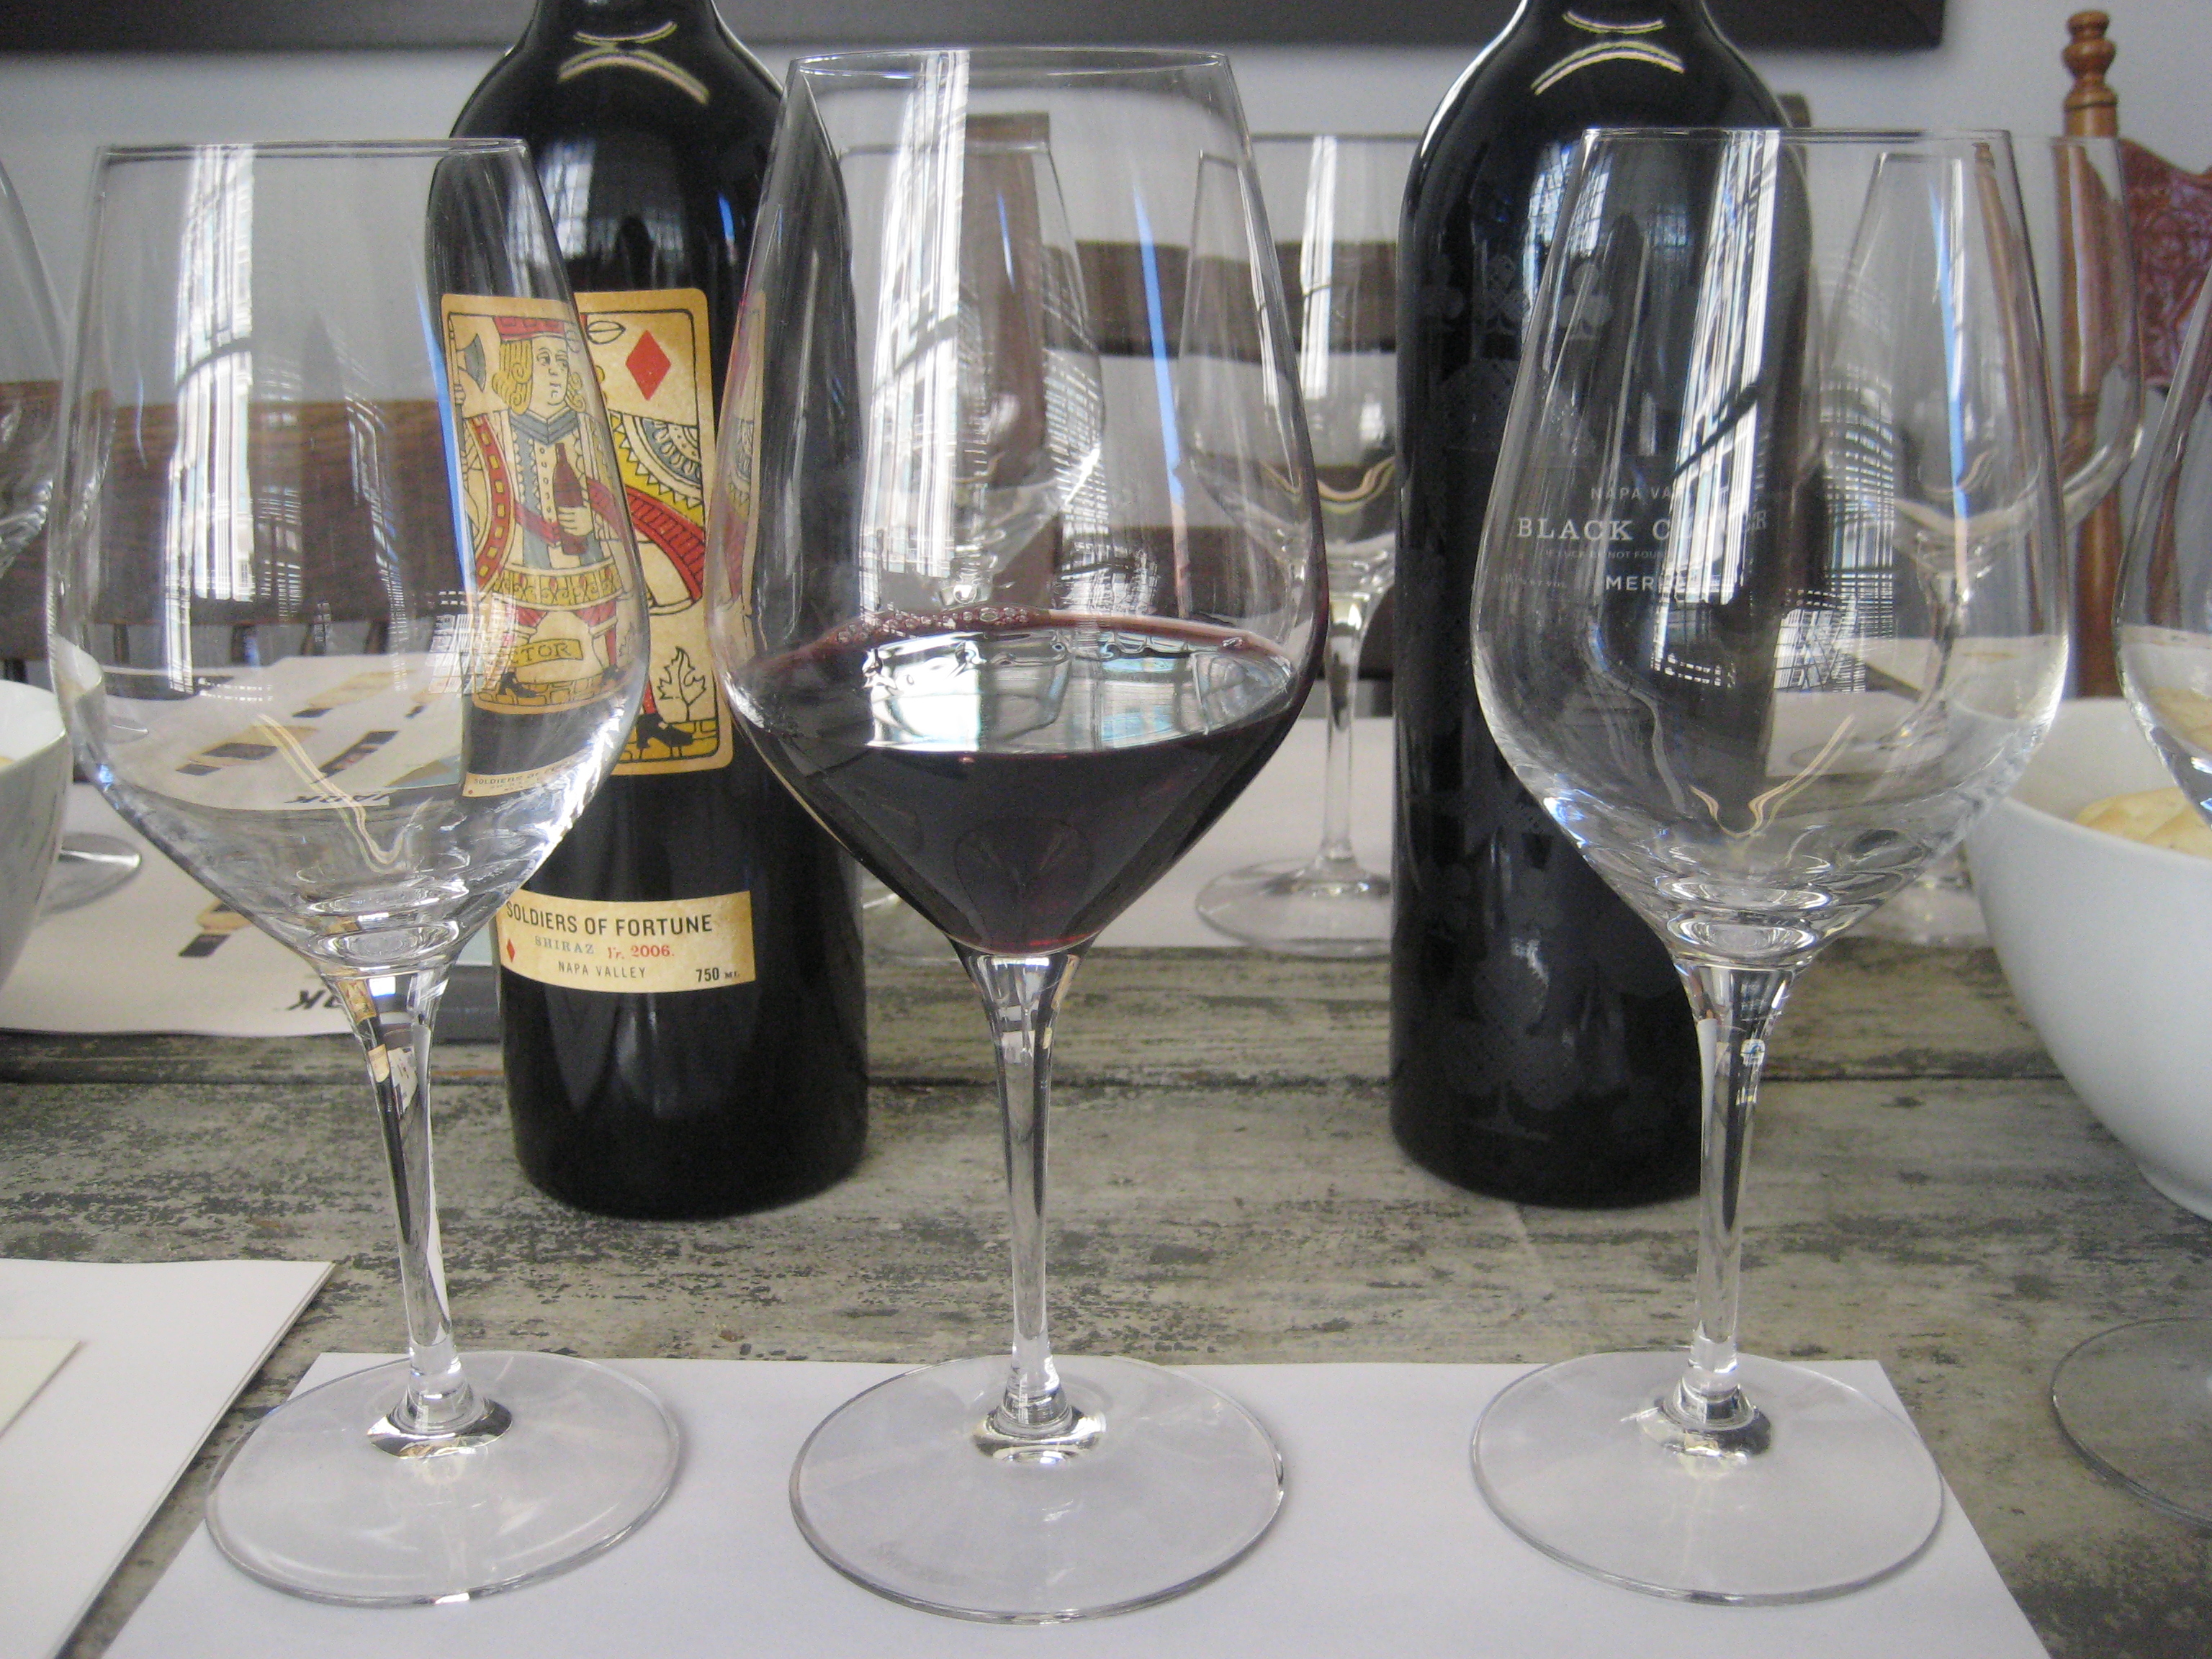 At a great wine tasting, you will be given a new glass for each wine.